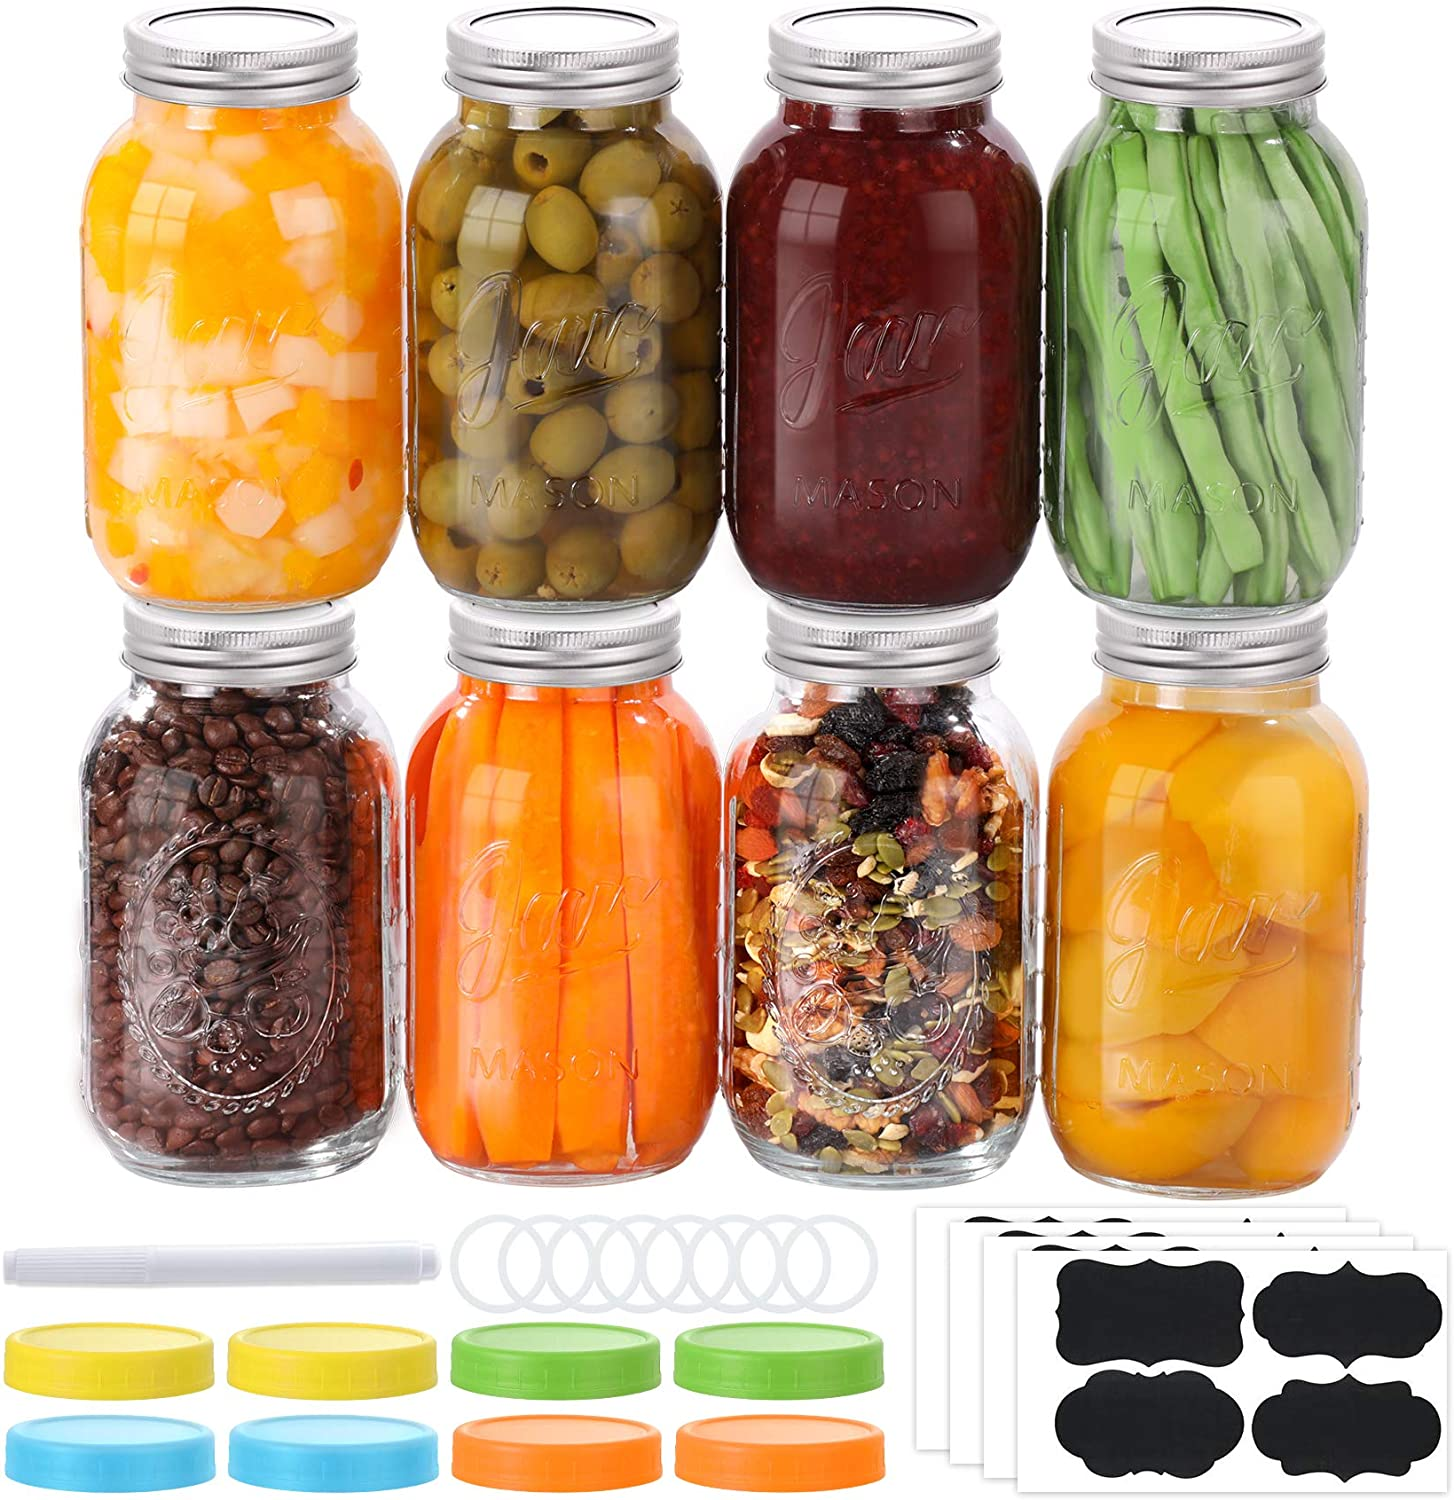 8 PACK Mason Jars 32 Oz, Large Regular Mouth Canning Jars with Metal Airtight Lids and Bands, Extra Leak-Proof Colored Lids, Chalkboard Labels, Marker, for Meal Prep, Food Storage, Canning, Preserving